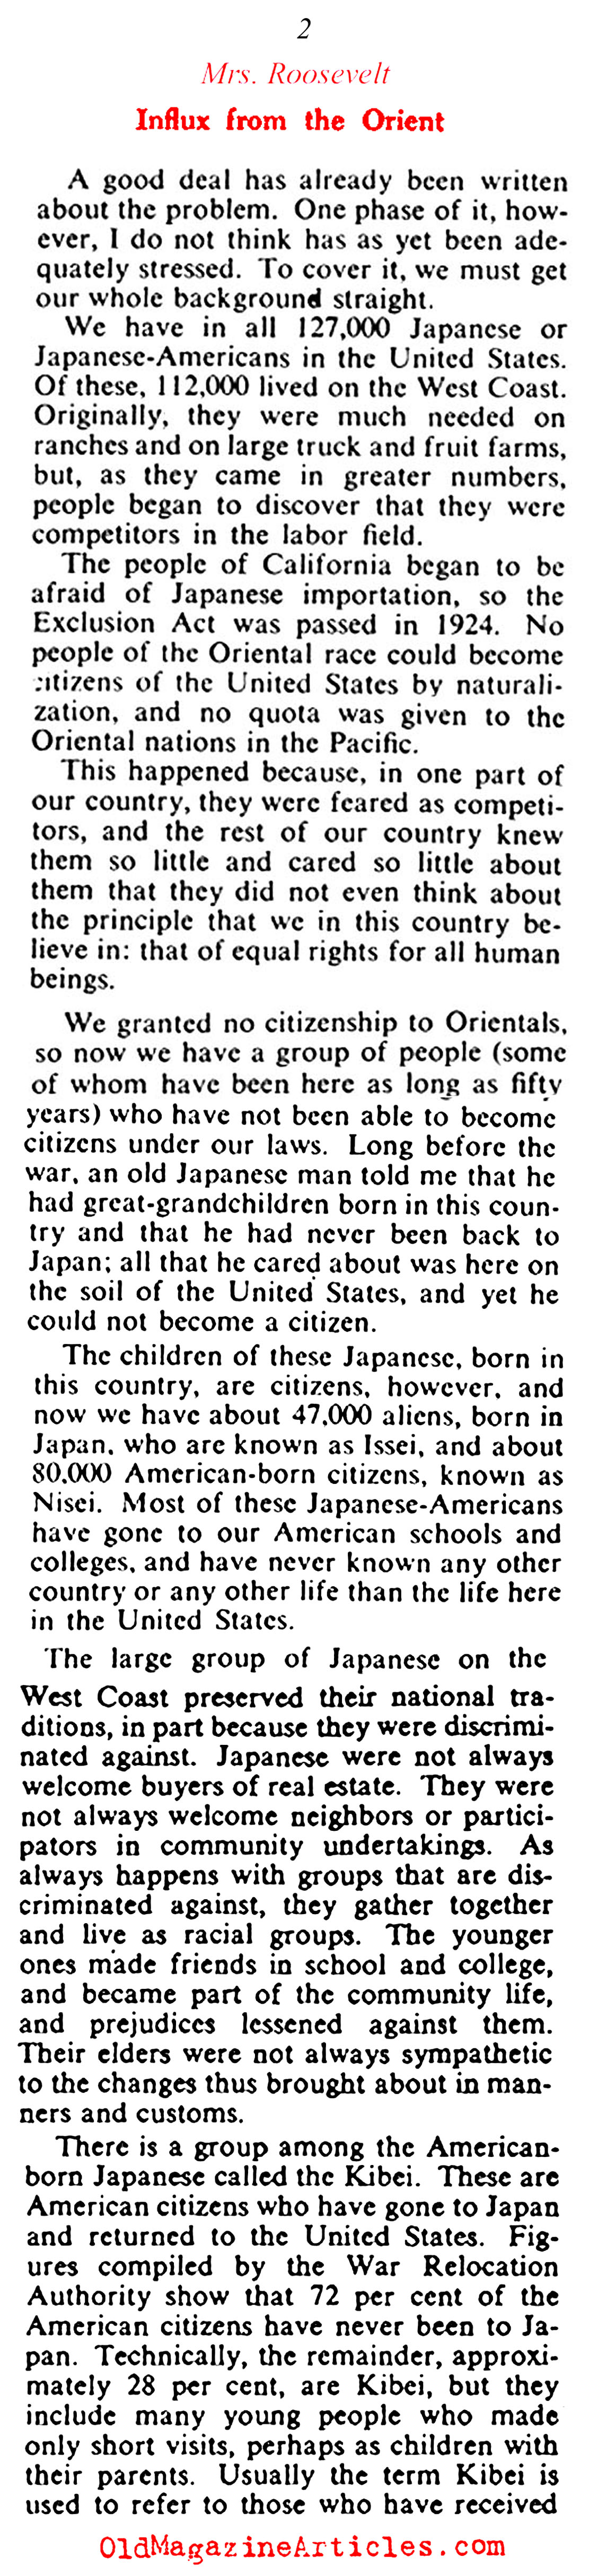 Eleanor Roosevelt on Japanese-American Internment (Collier's Magazine, 1943)